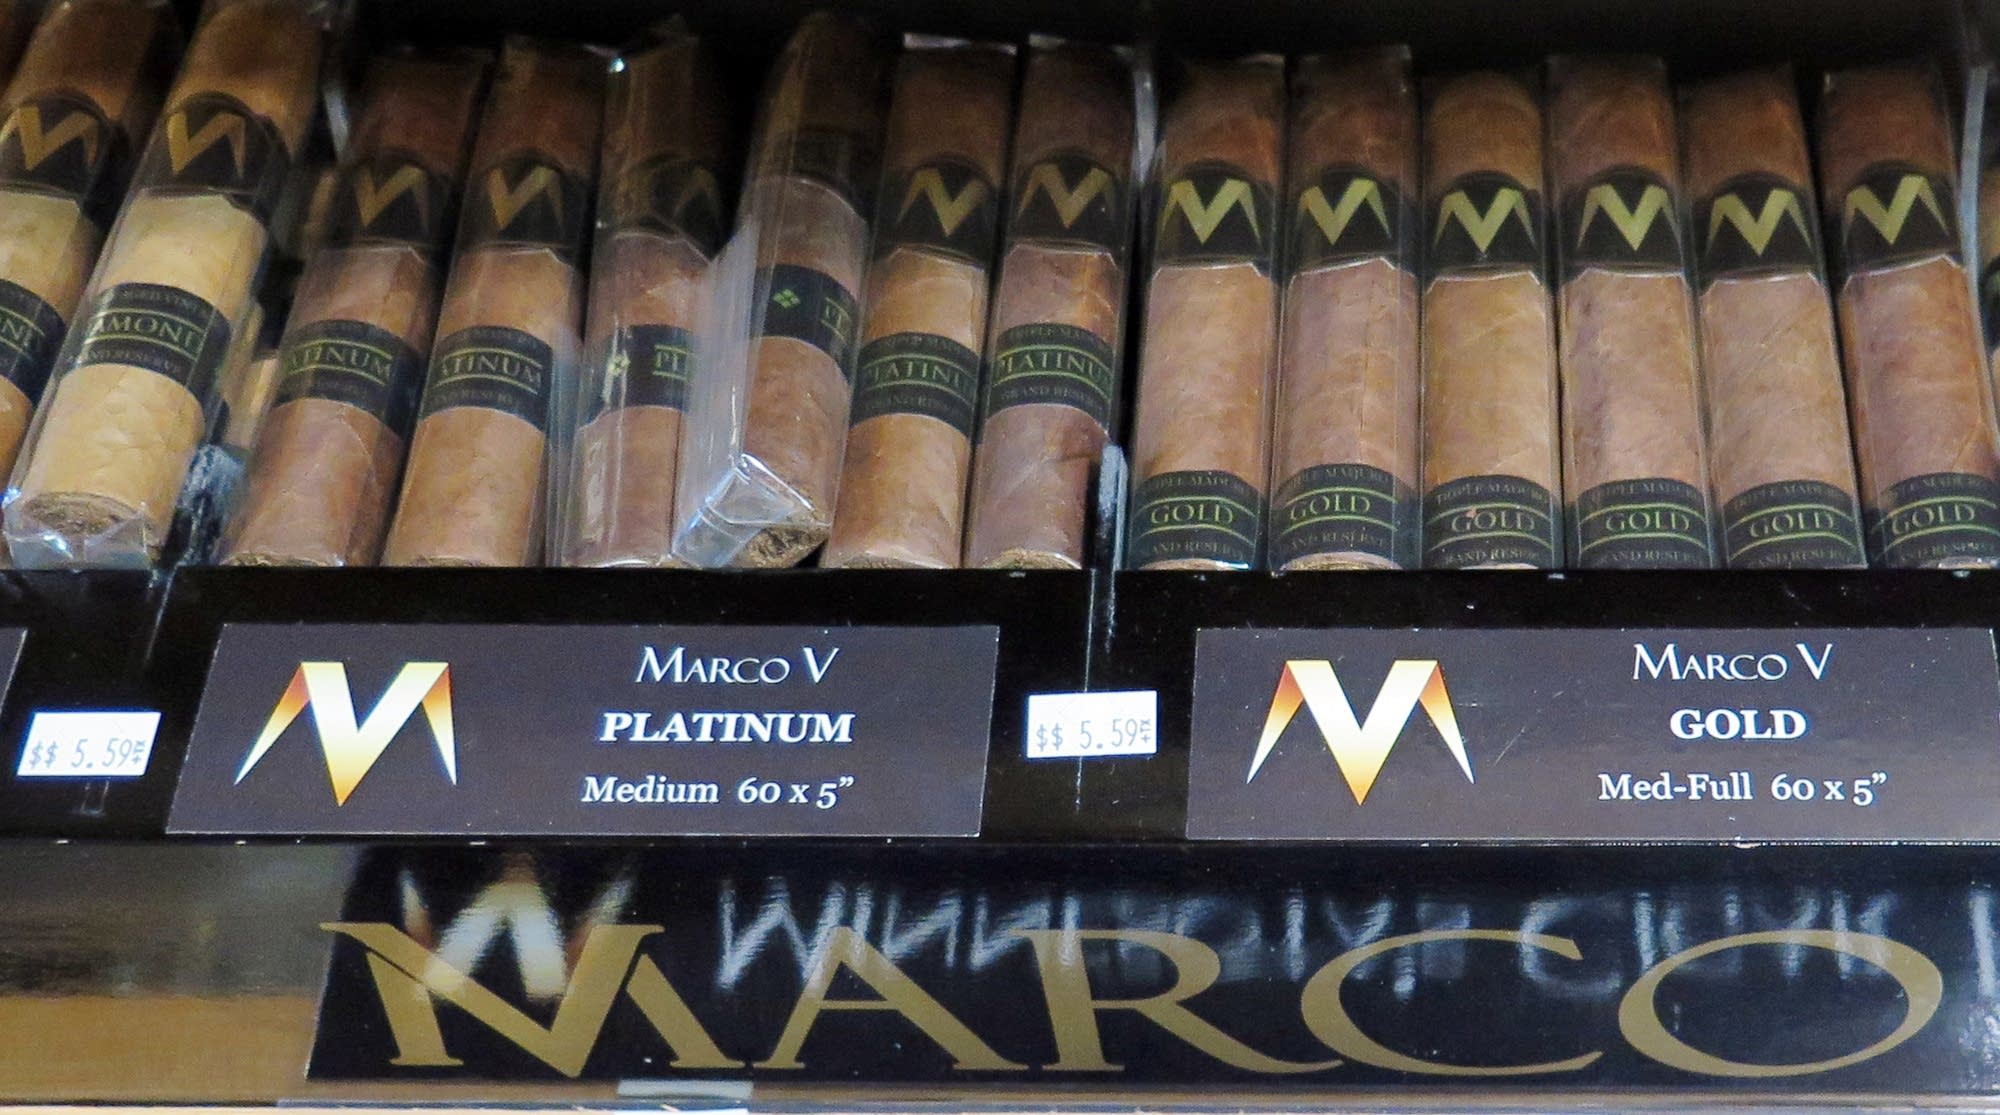 Premium cigars are on display at Maplewood Tobacco and E-Cig Center.